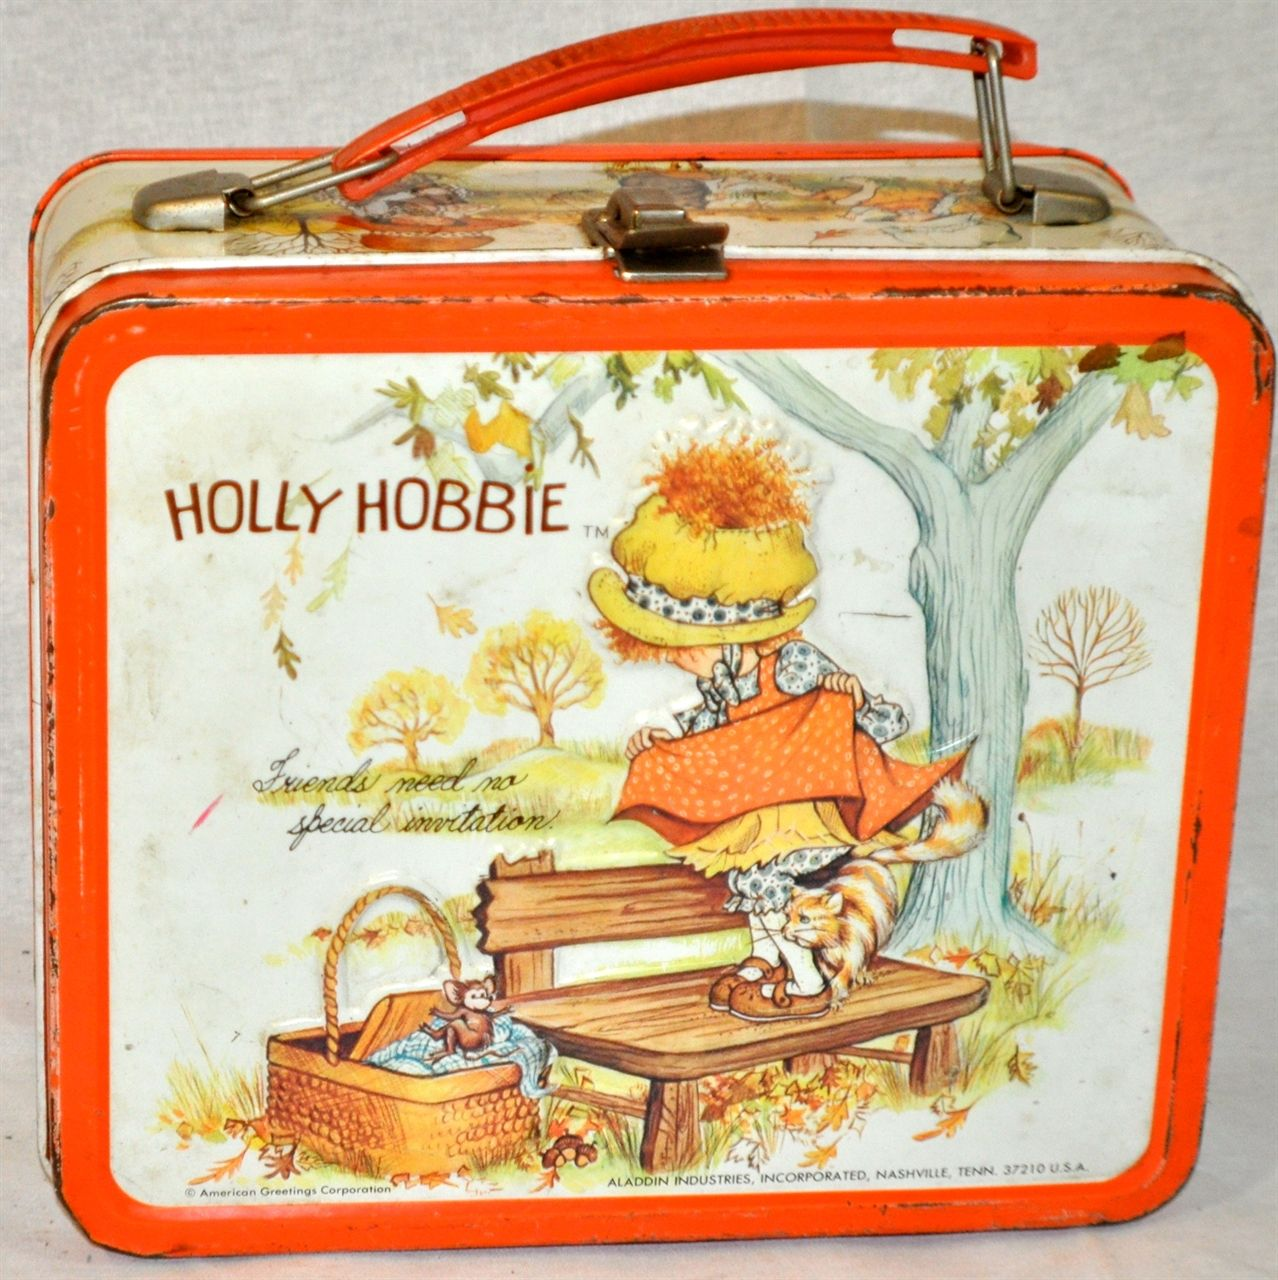 Pin on Lunch Boxes.